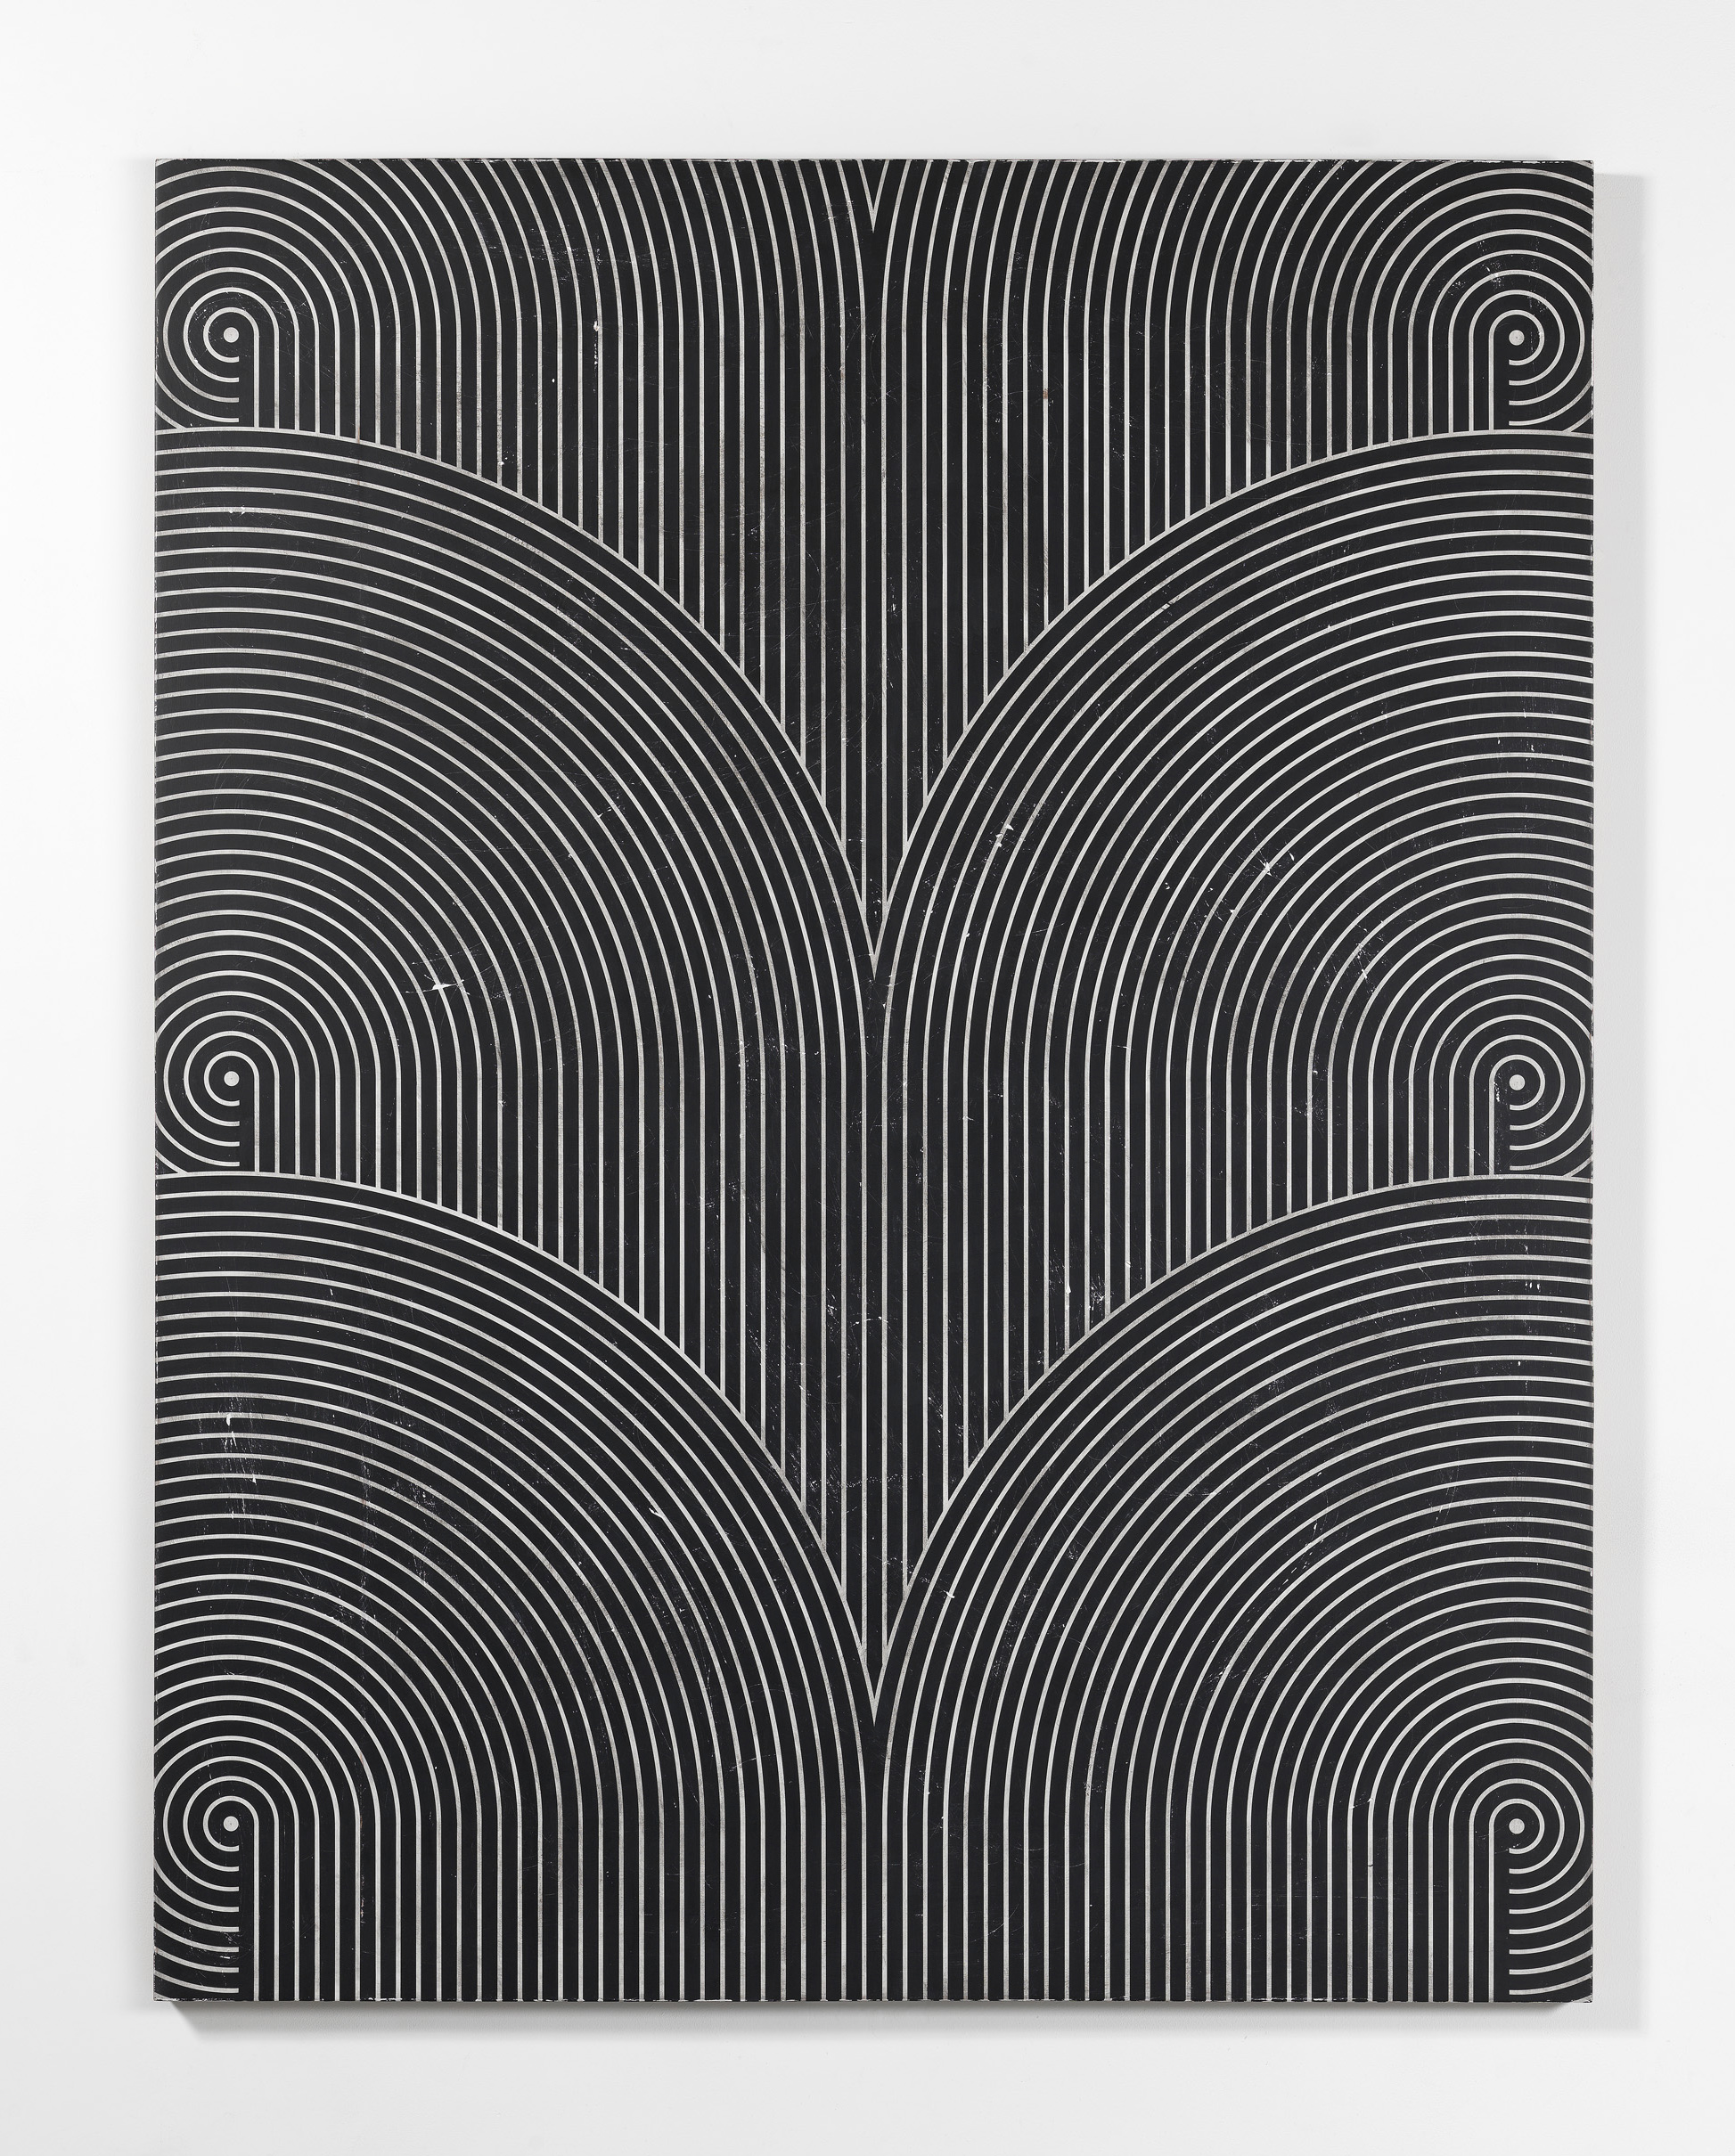 Davide Balliano, Untitled | 2017, Plaster, gesso and lacquer on wood, 182.8 x 142.2 cm